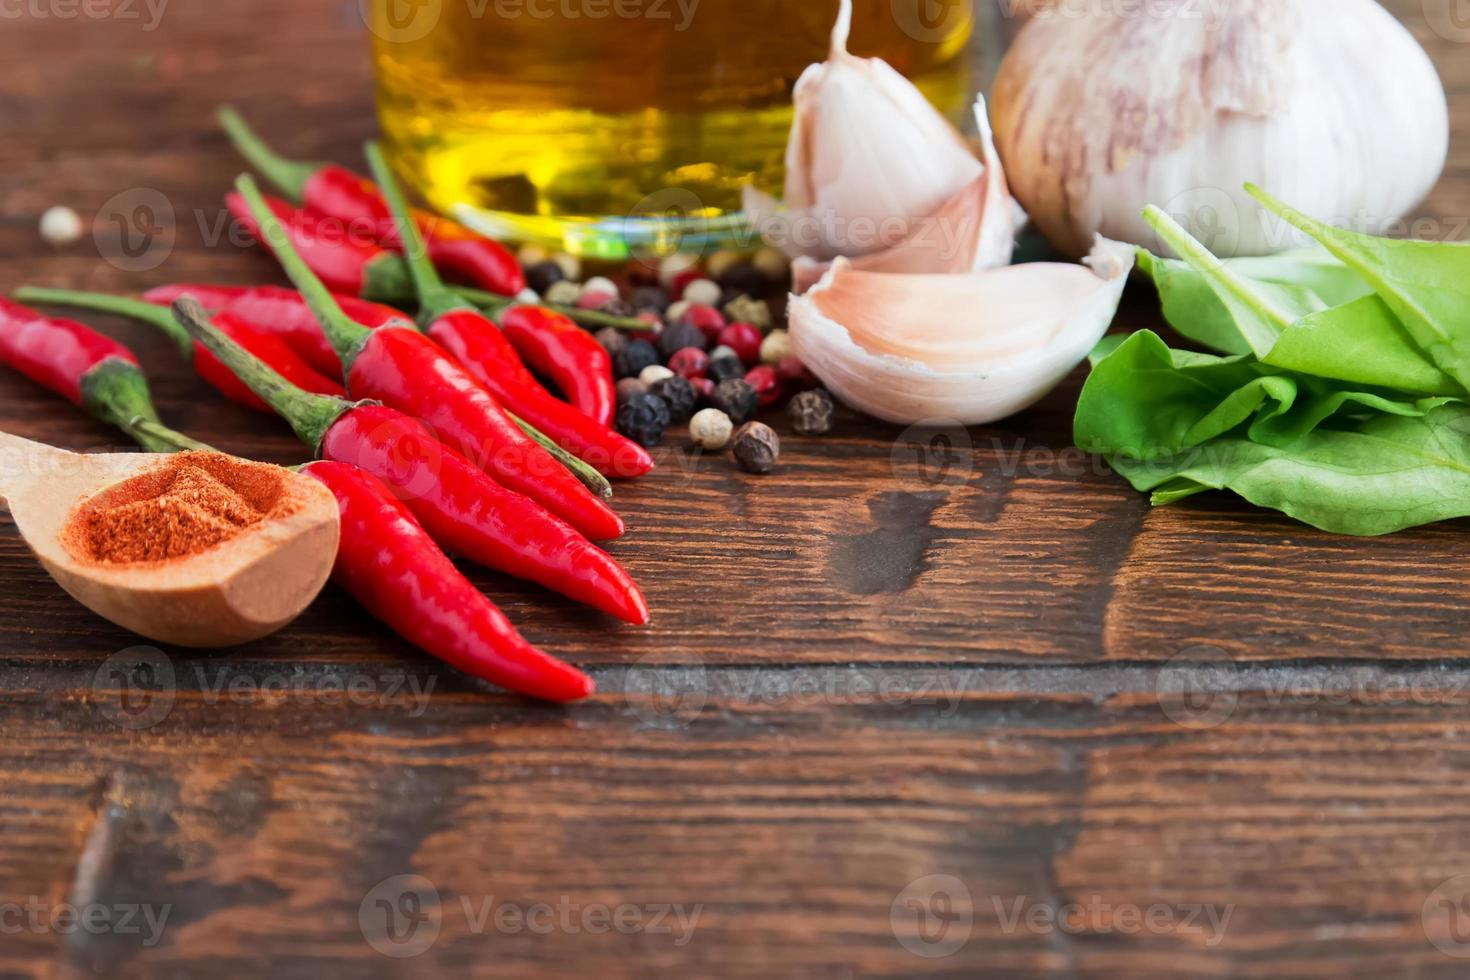 Pepper, garlic and other spices photo